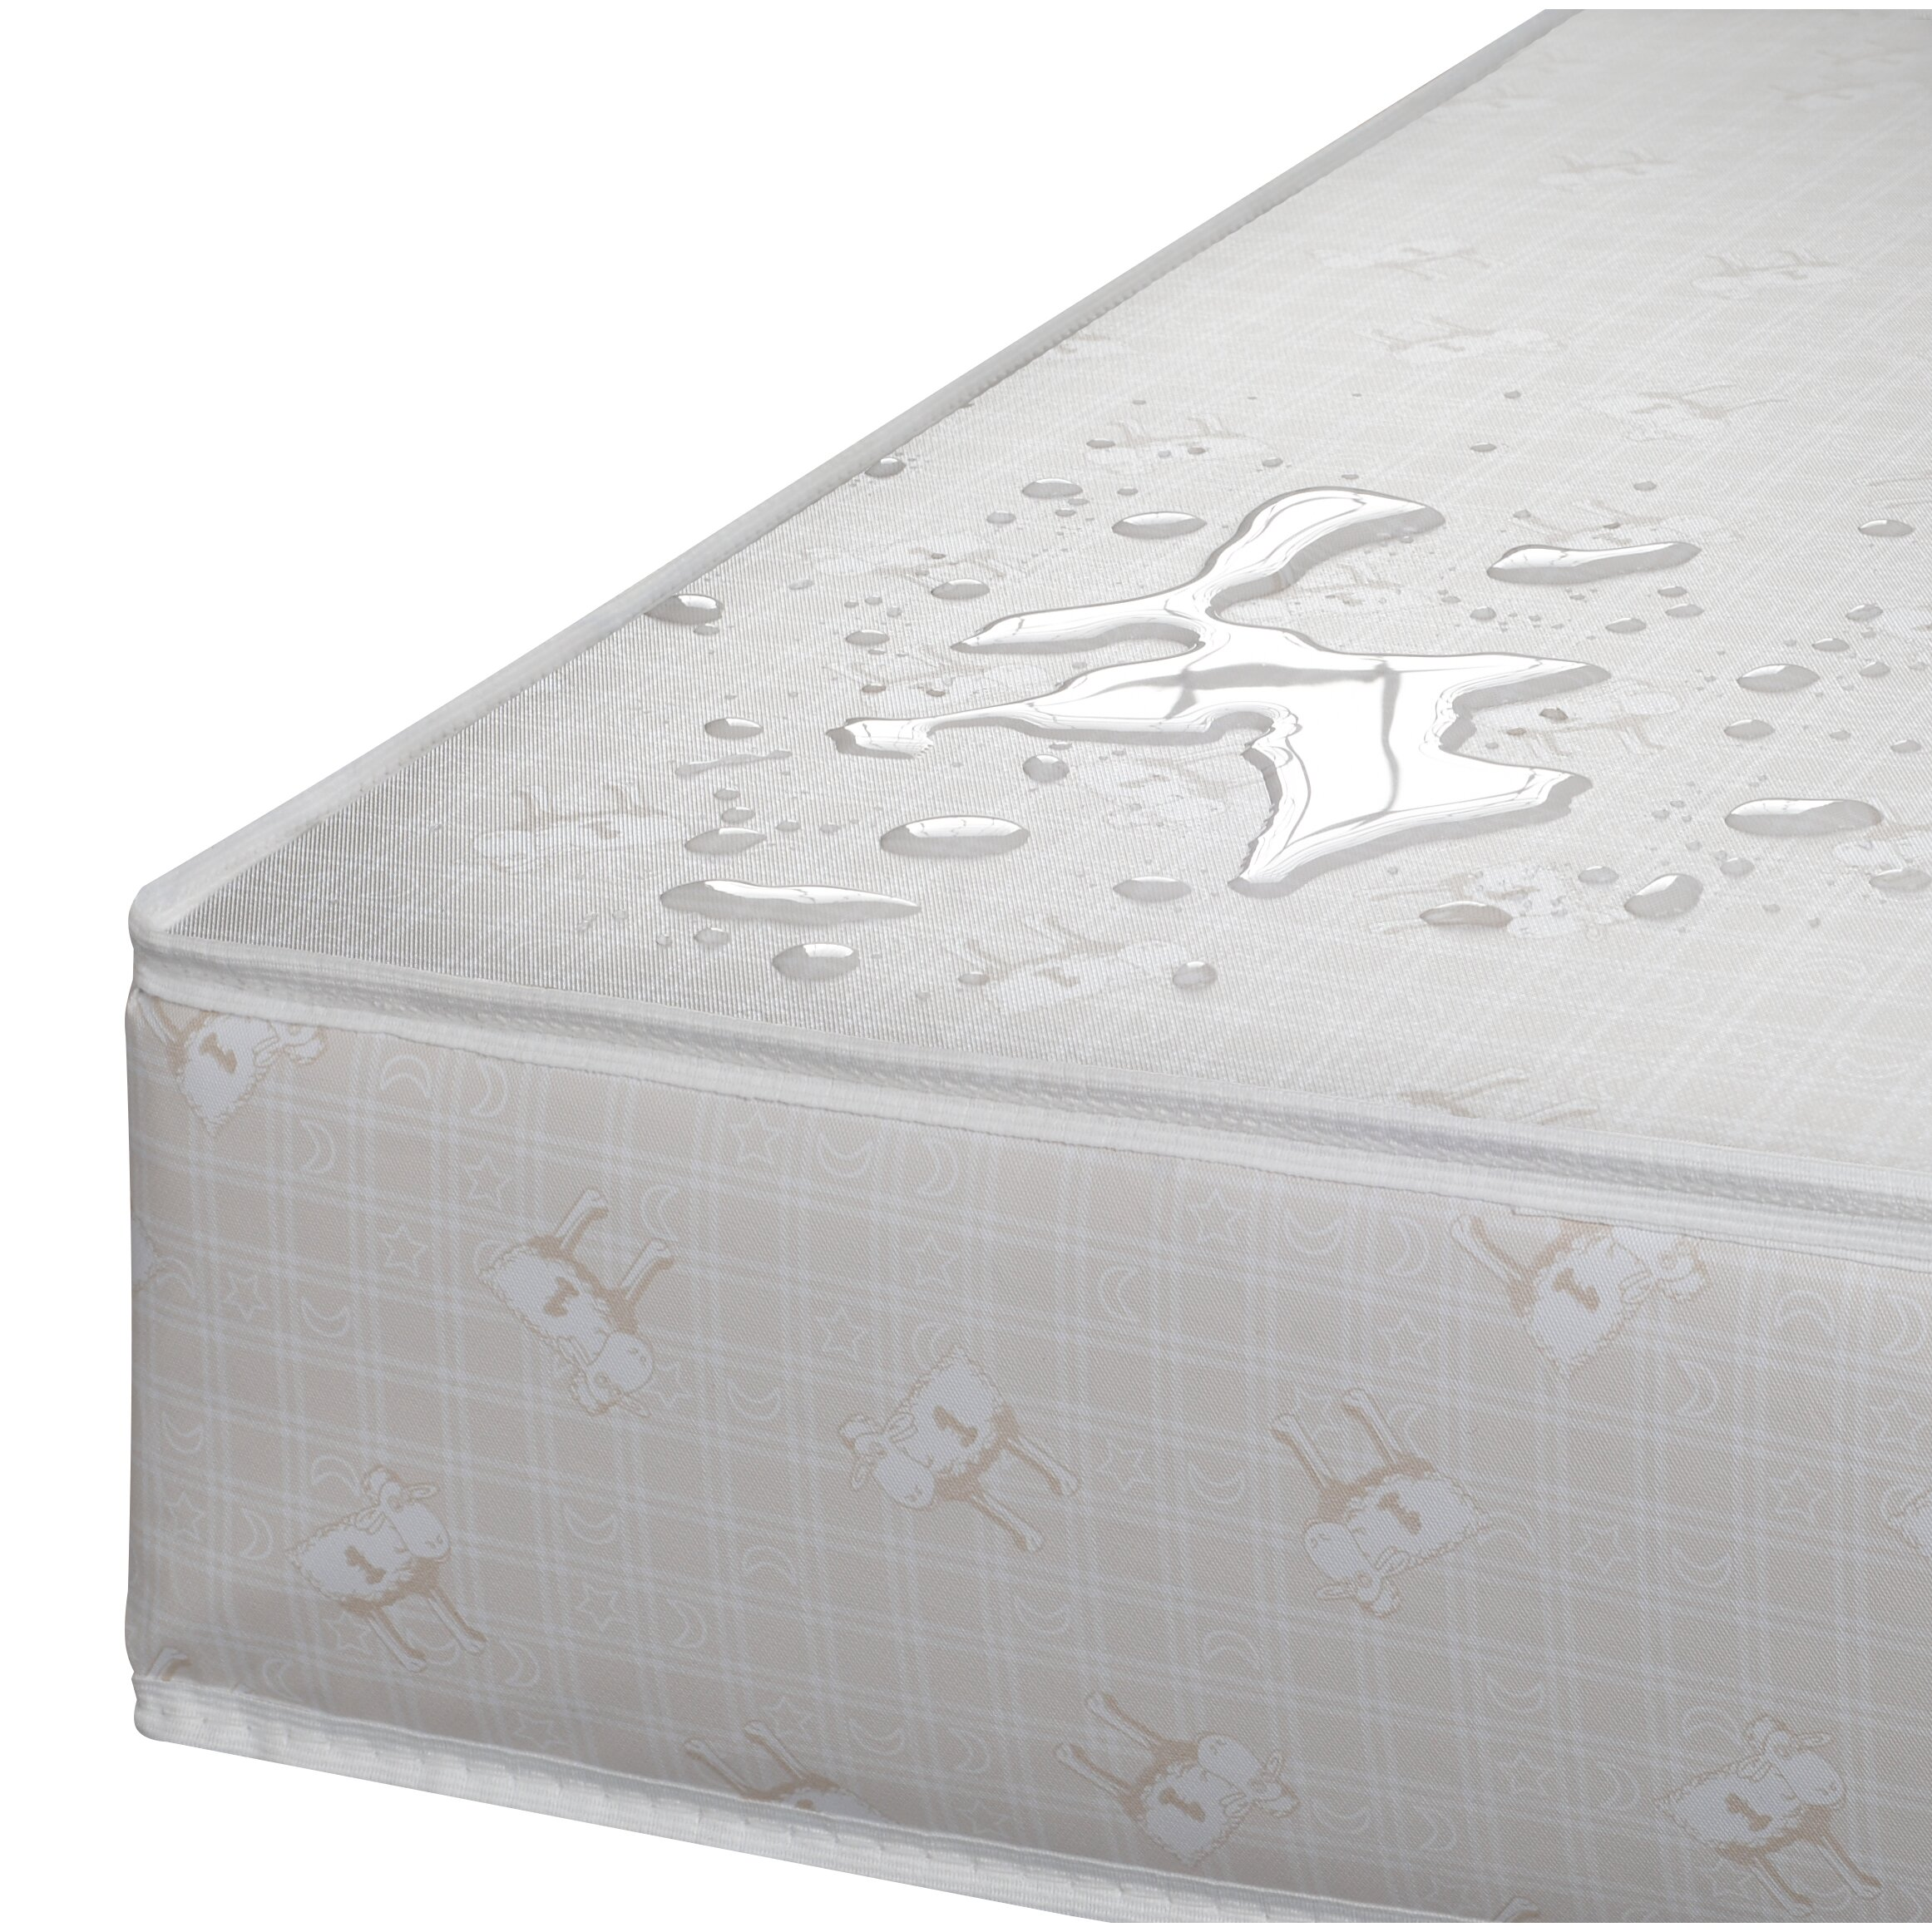 crib mattress reviews 10 really important and useful tips to buy a crib mattress best crib